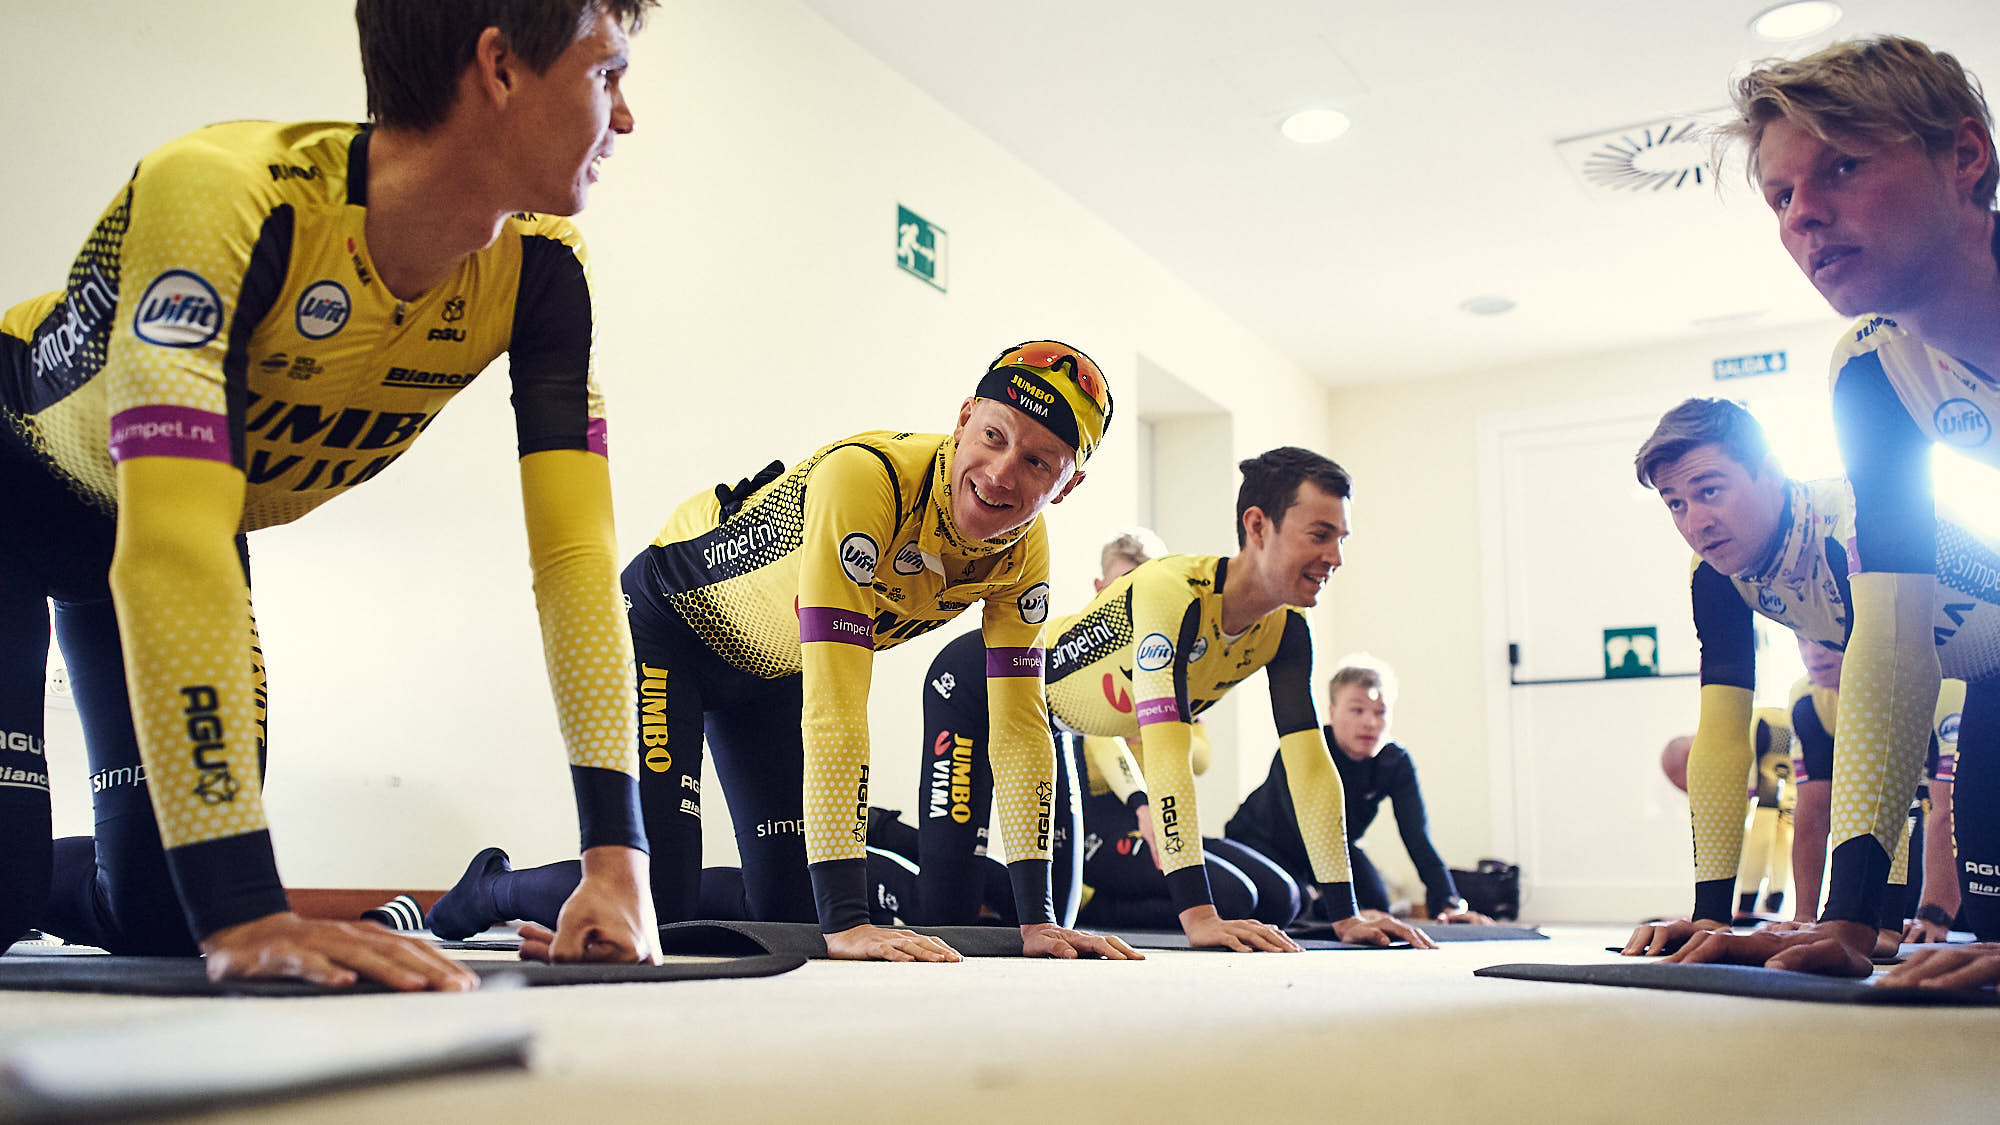 Jumbo-Visma cyclists during a core session